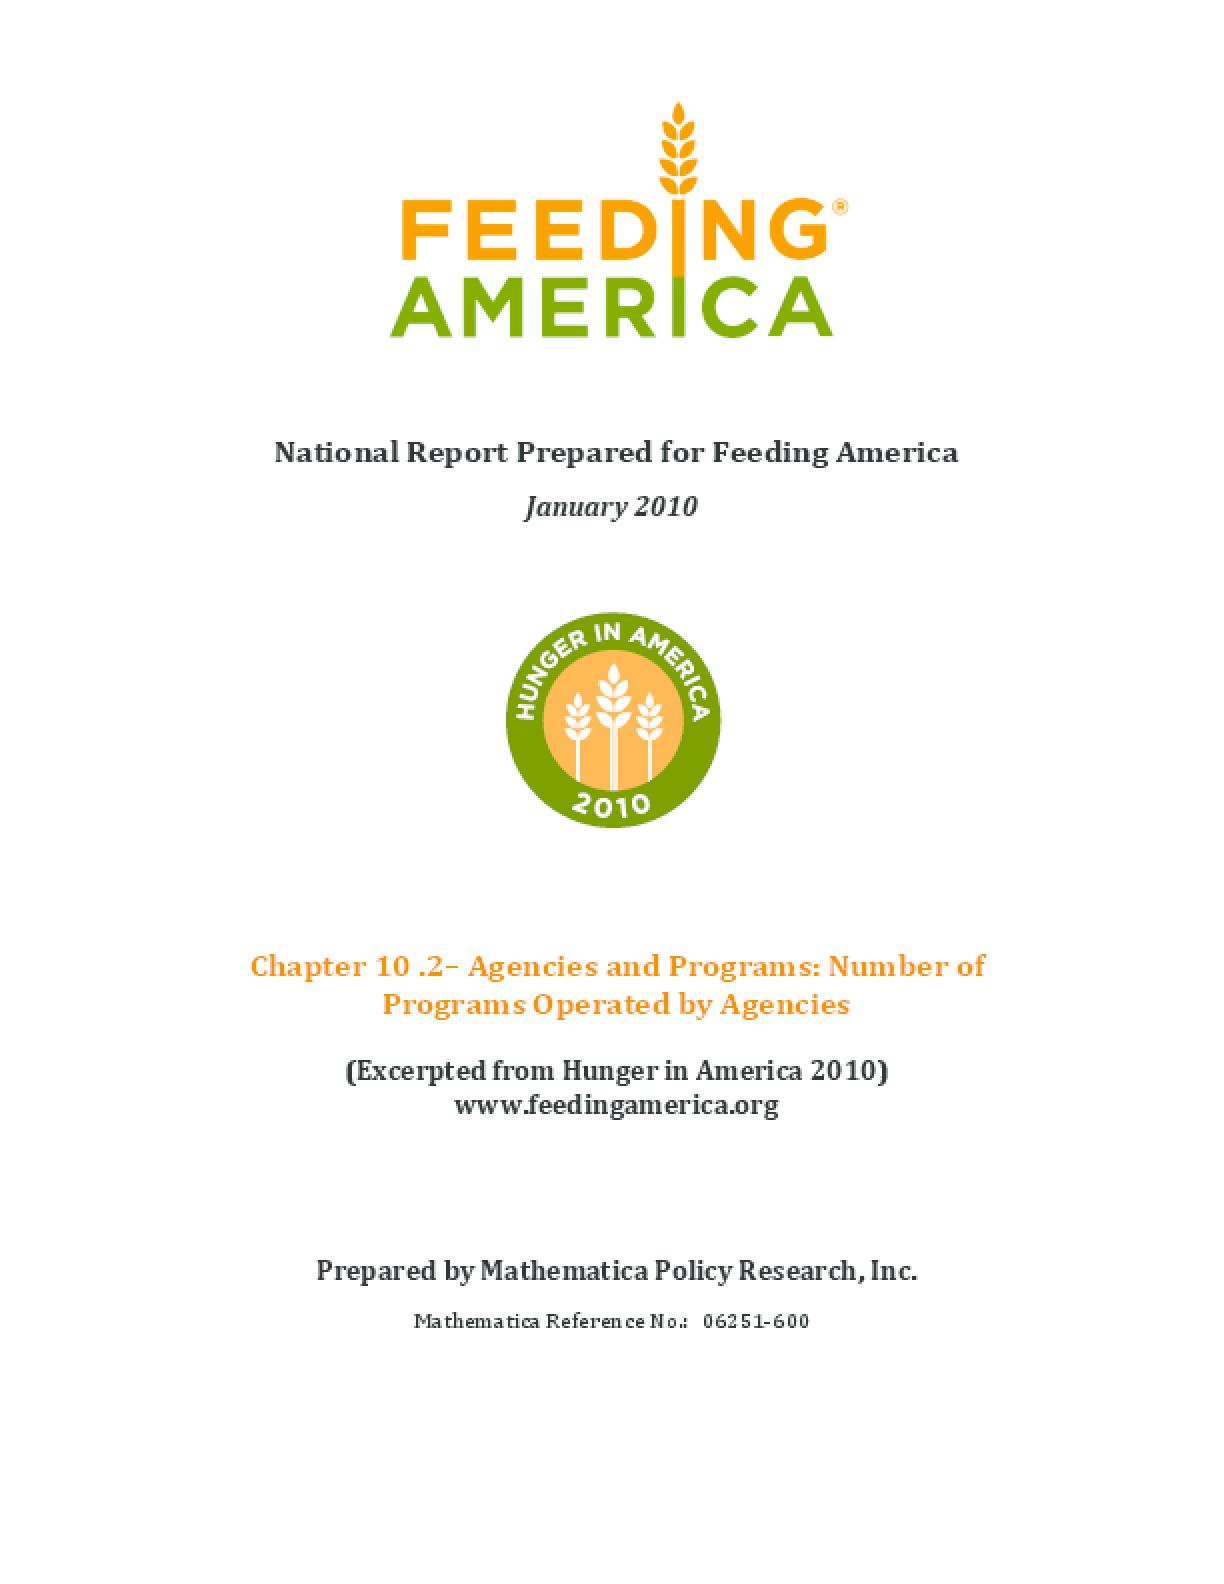 Feeding America Agencies and Food Programs: Number of Programs Operated by Agencies